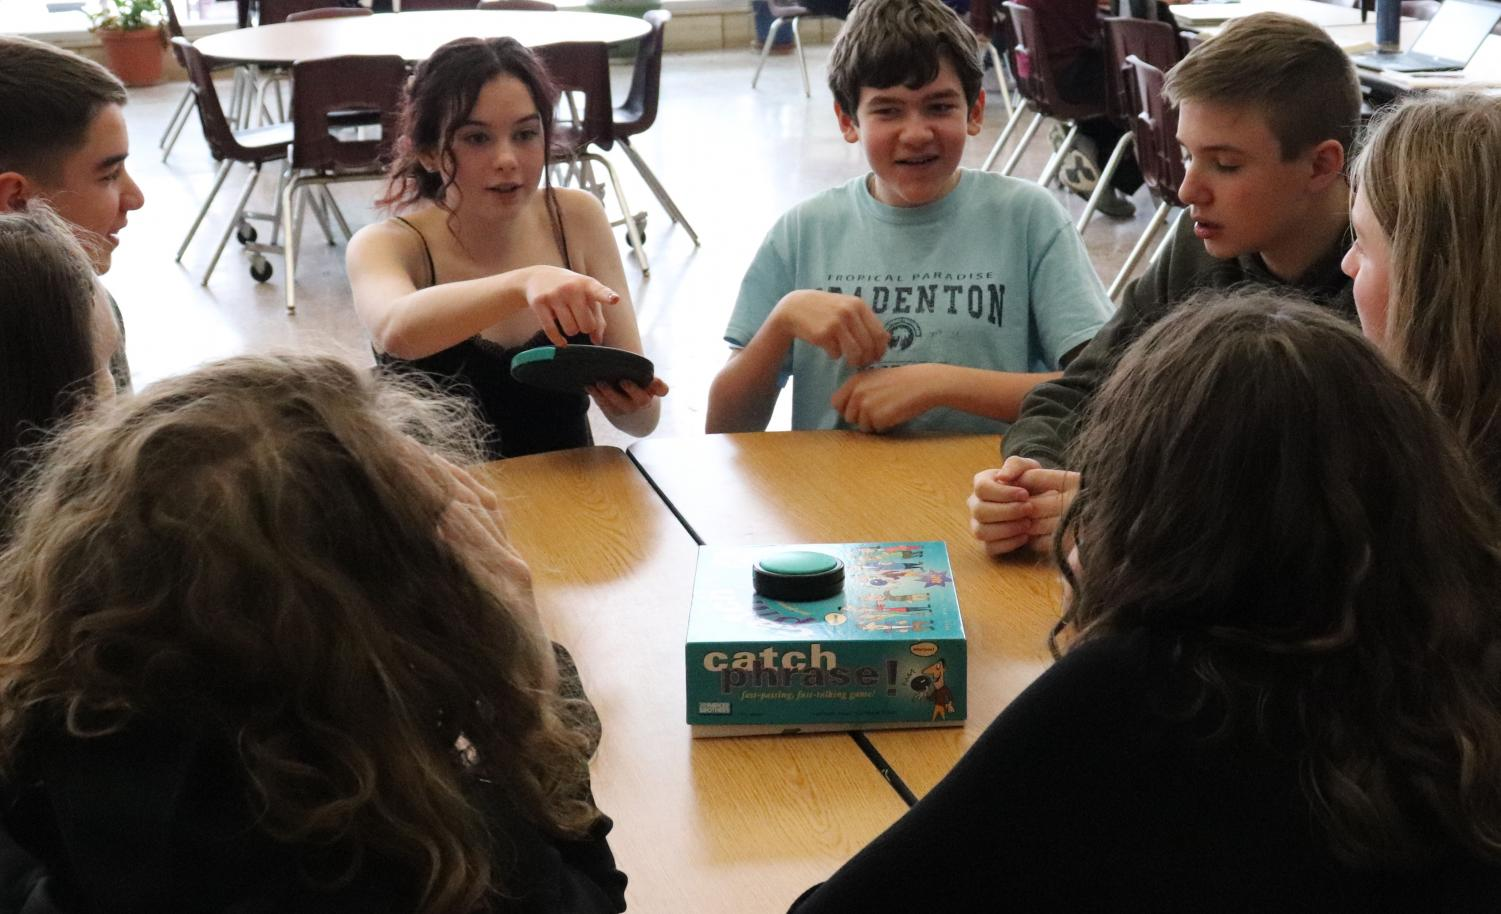 Freshmen in J-Term class play boardgames as they start the week.